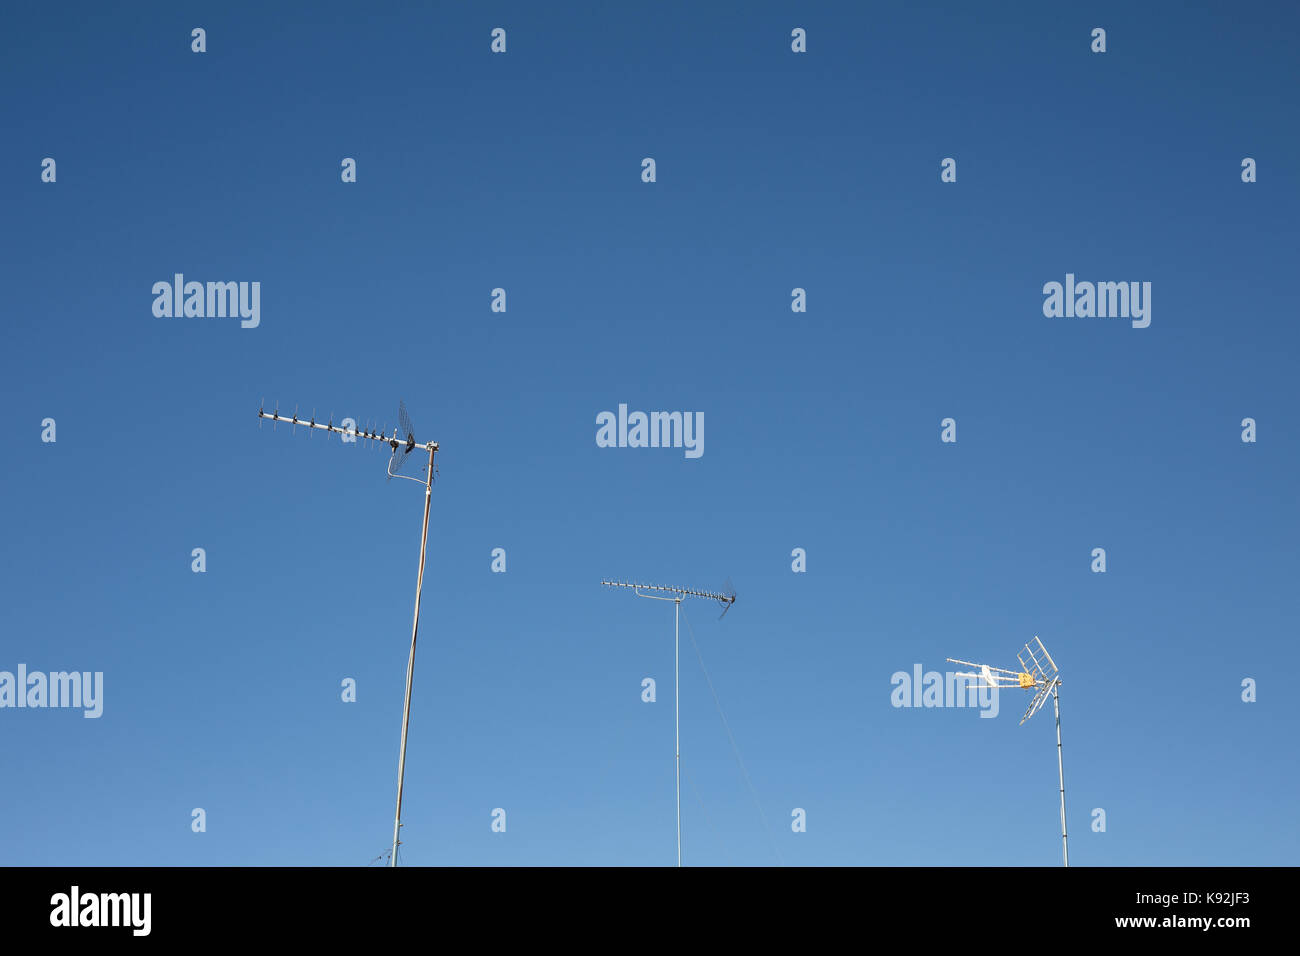 TV Aerial / Antenna masts against a blue sky. - Stock Image